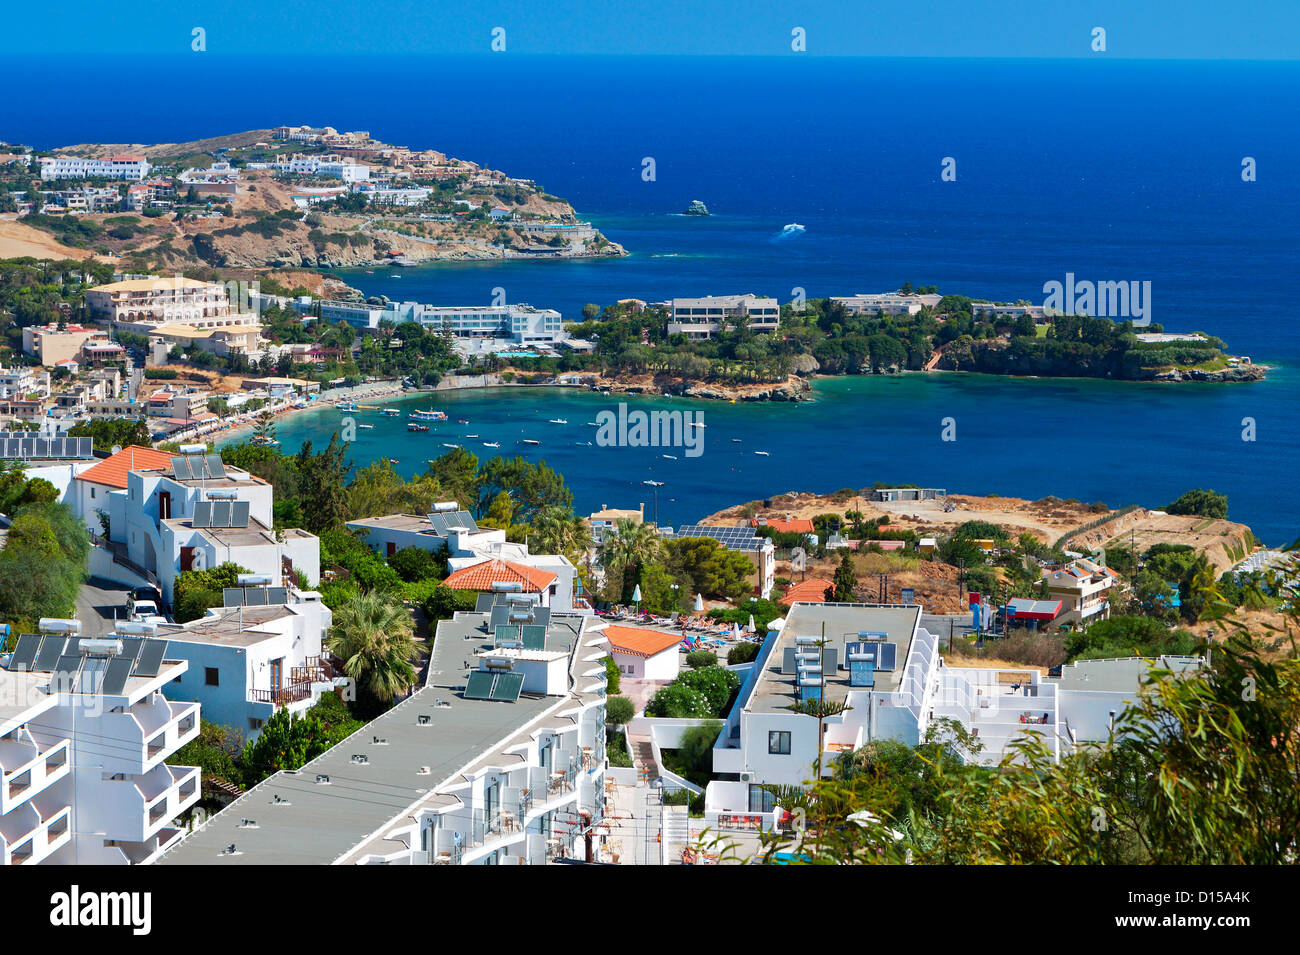 Aghia Pelagia bay at Crete island in Greece - Stock Image